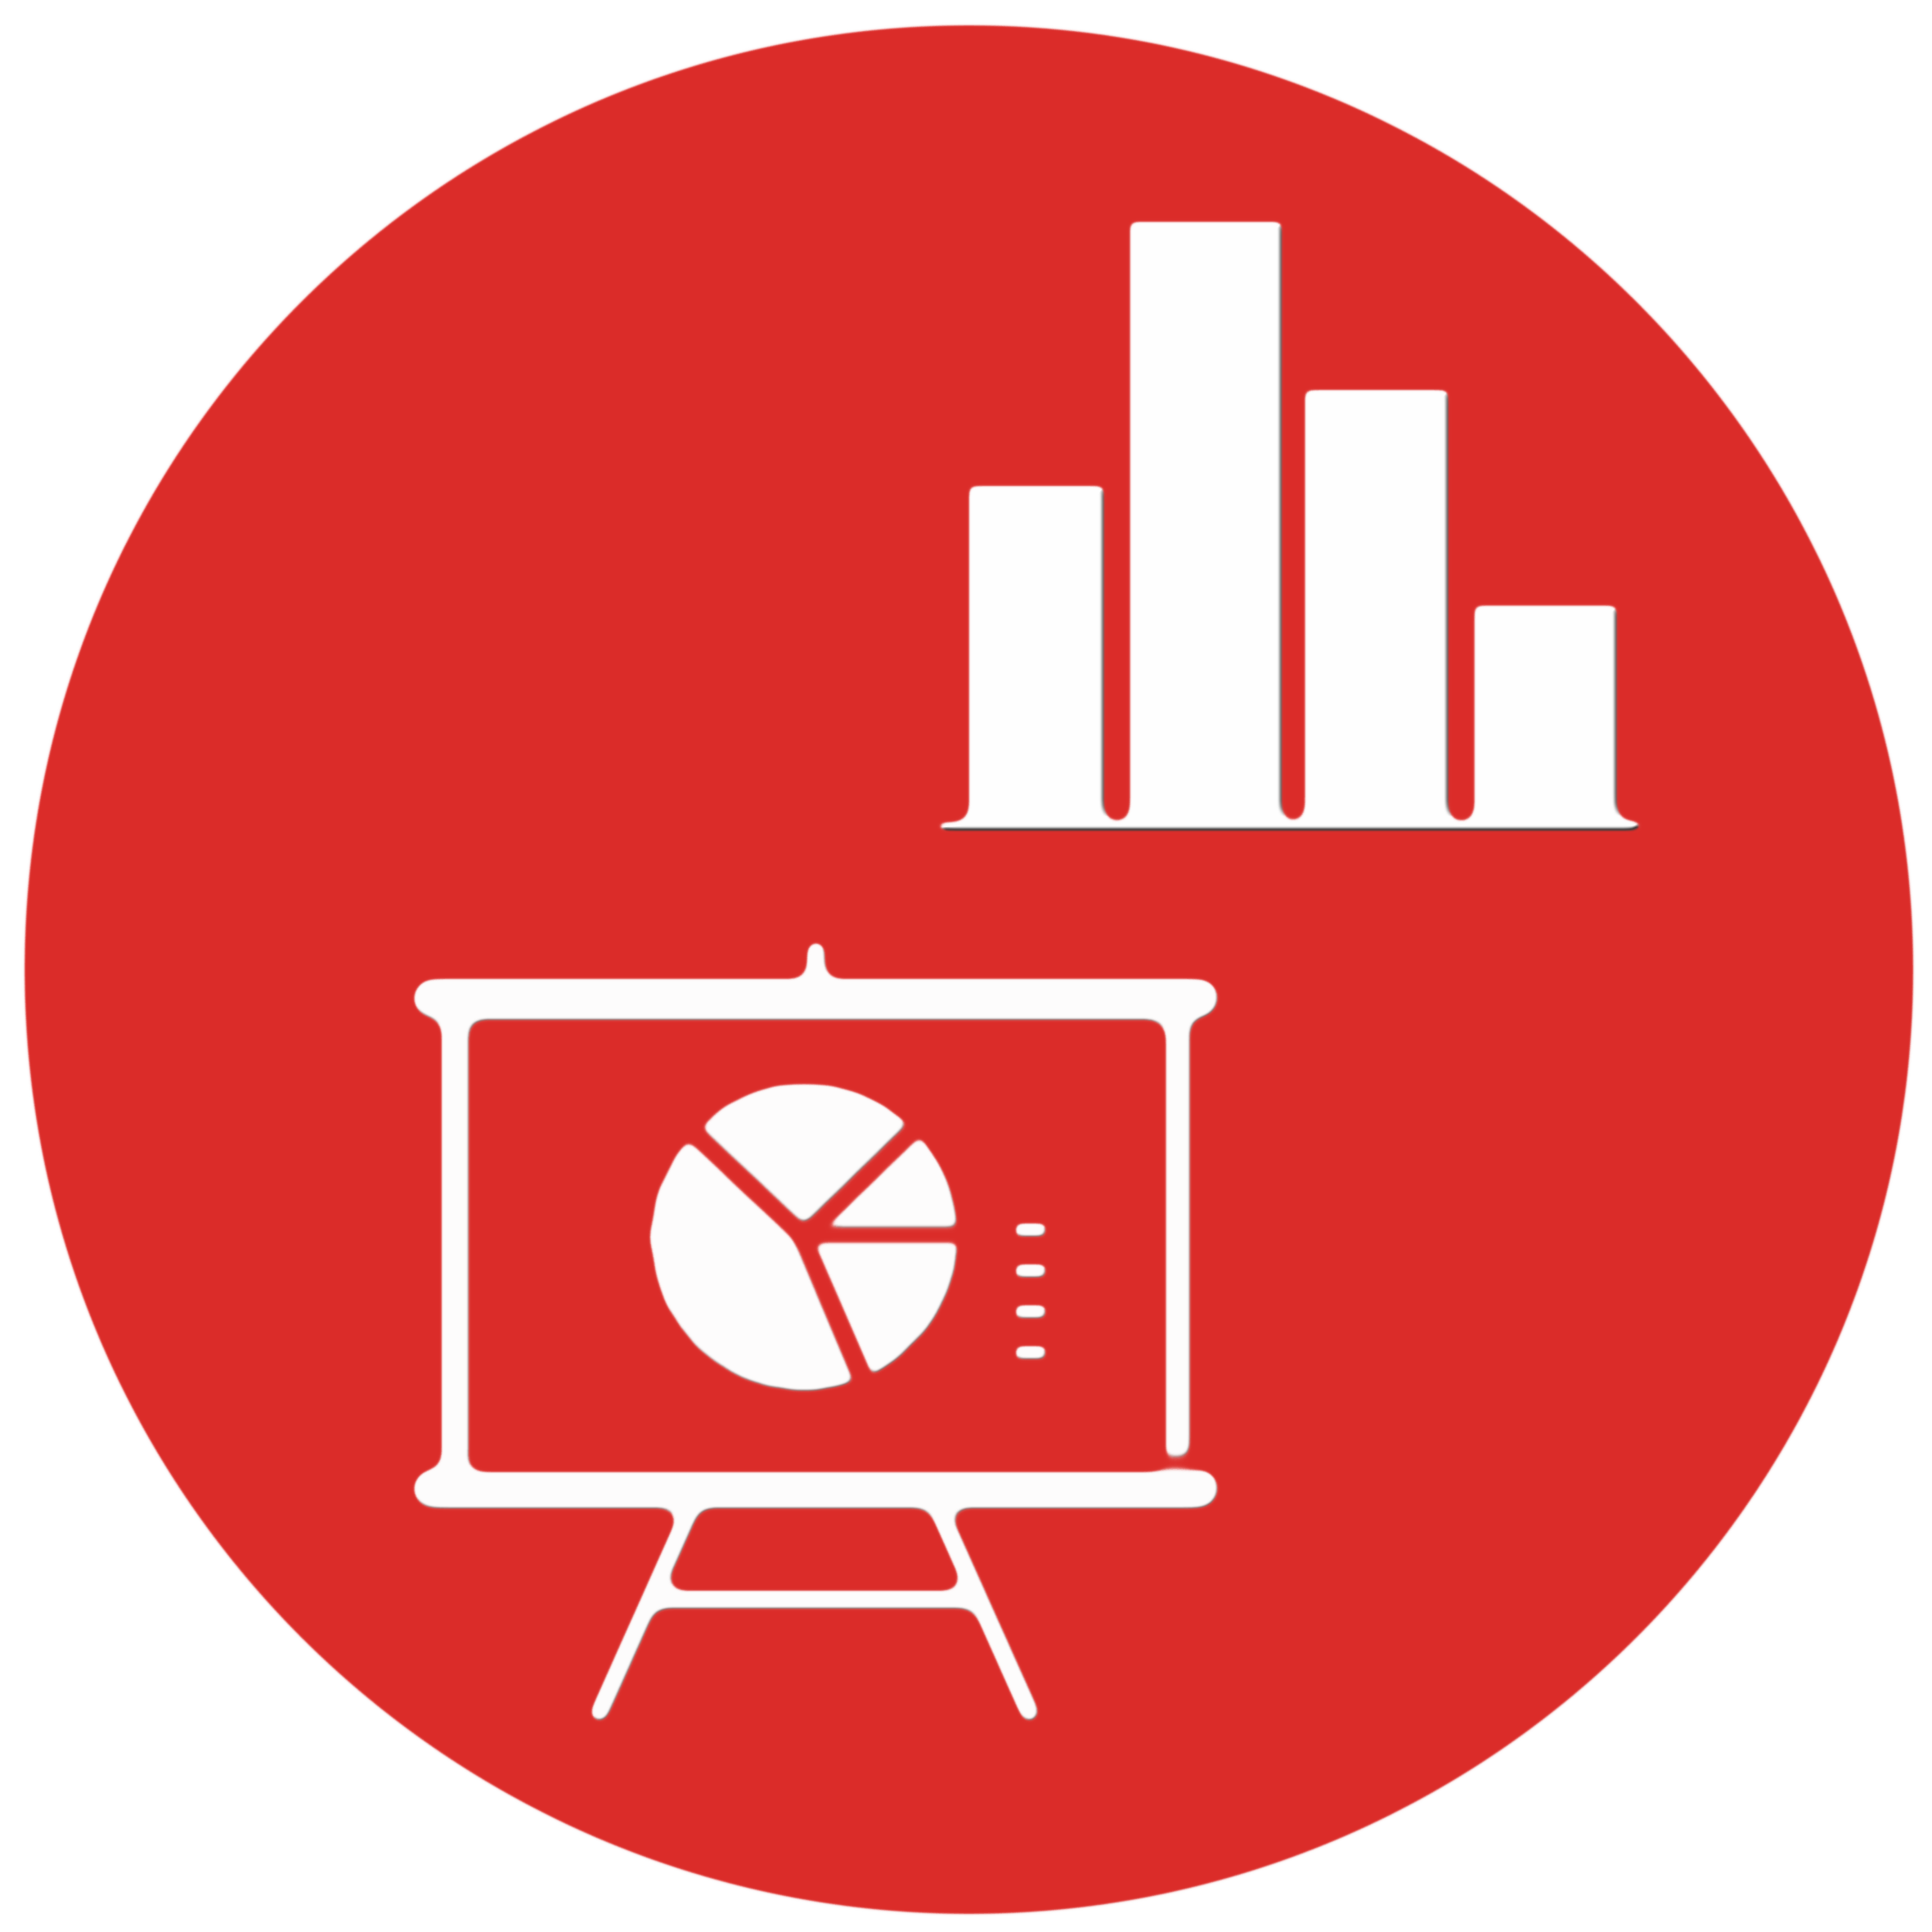 Logo of the data visualization service - represent a screen and a graph